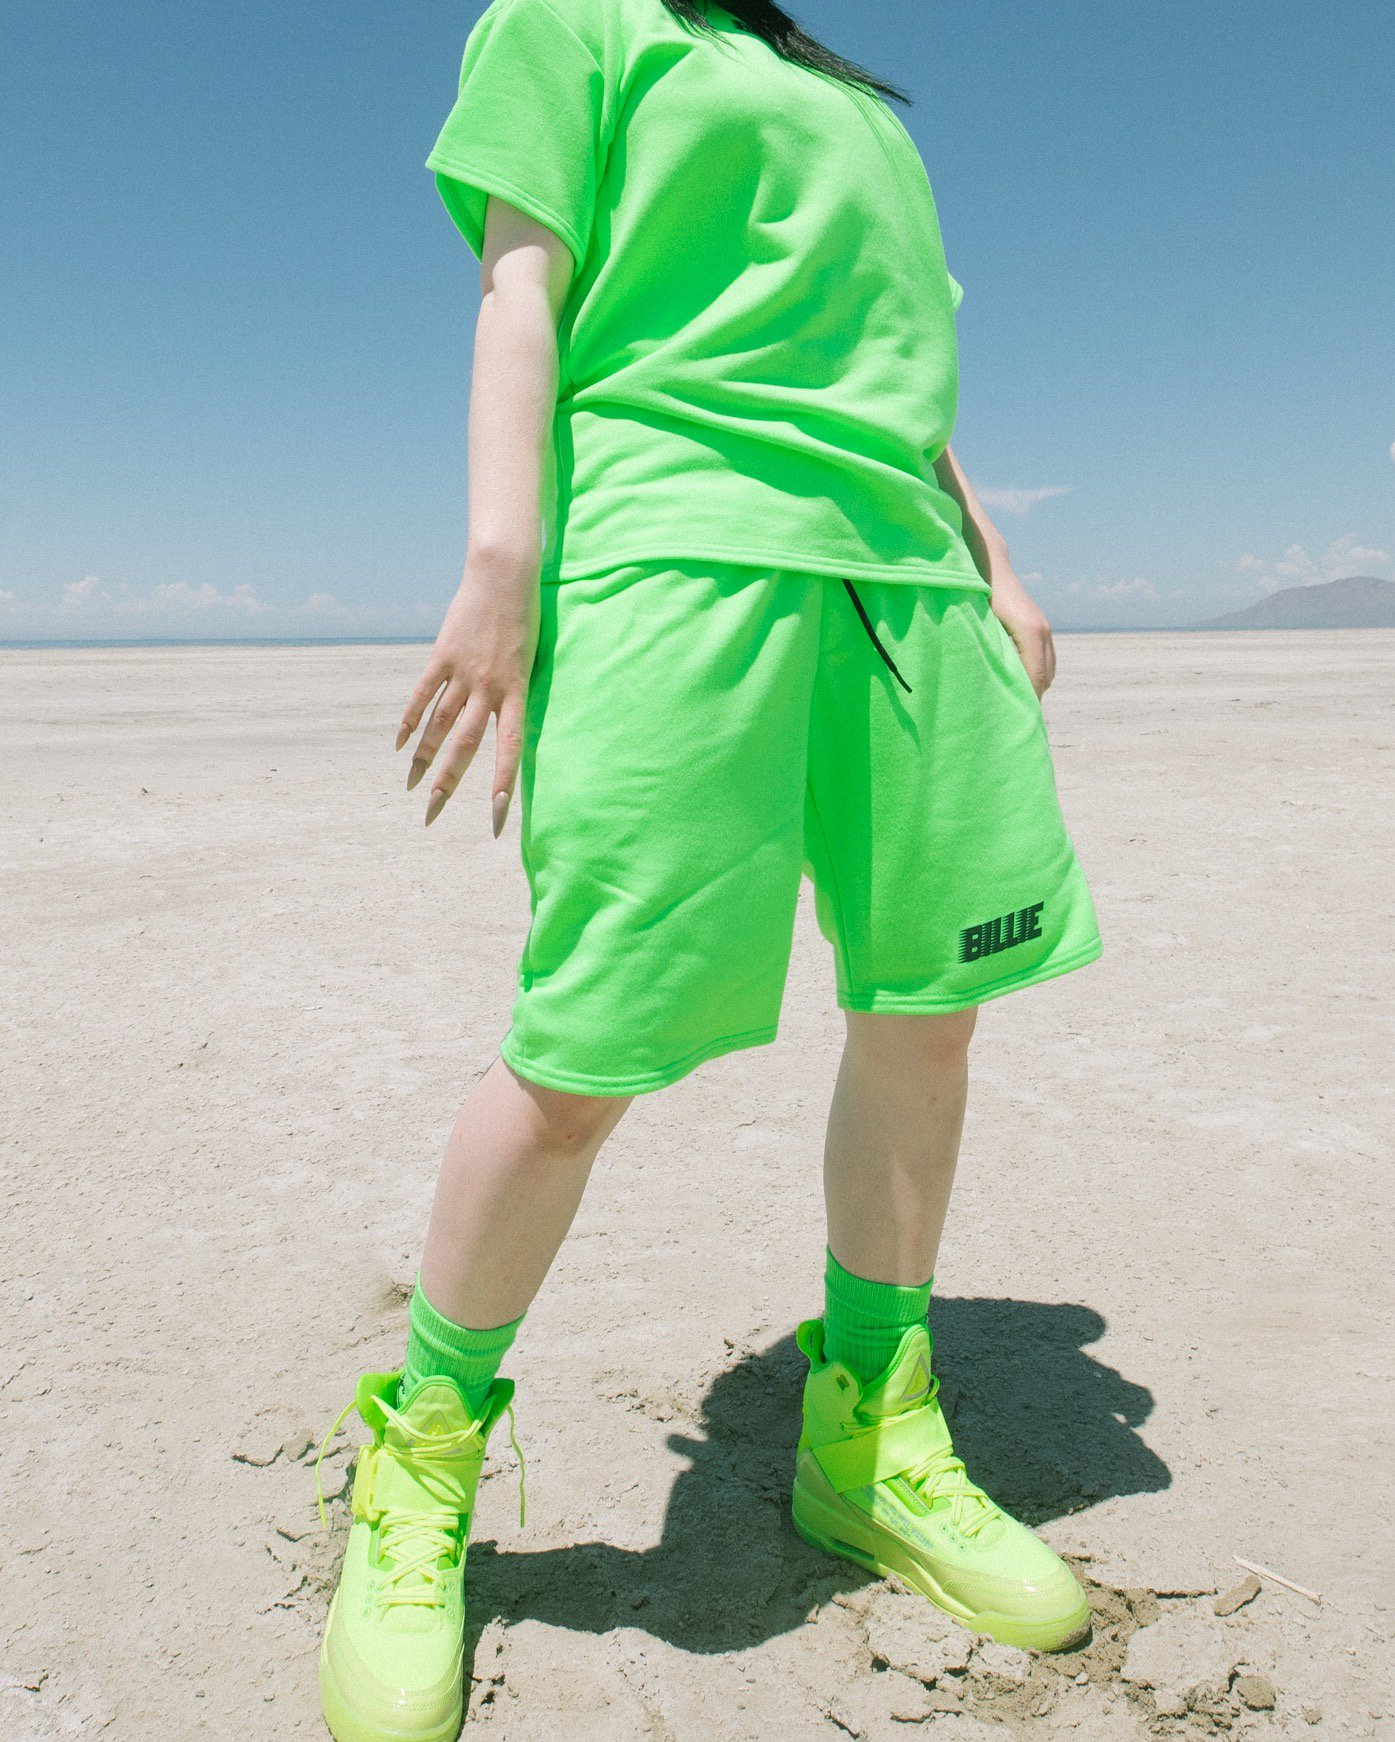 Billie Eilish On Twitter The Billie Green Slime Set Is Available Now In Billie S Official Store Https T Co Dfs5cholz5